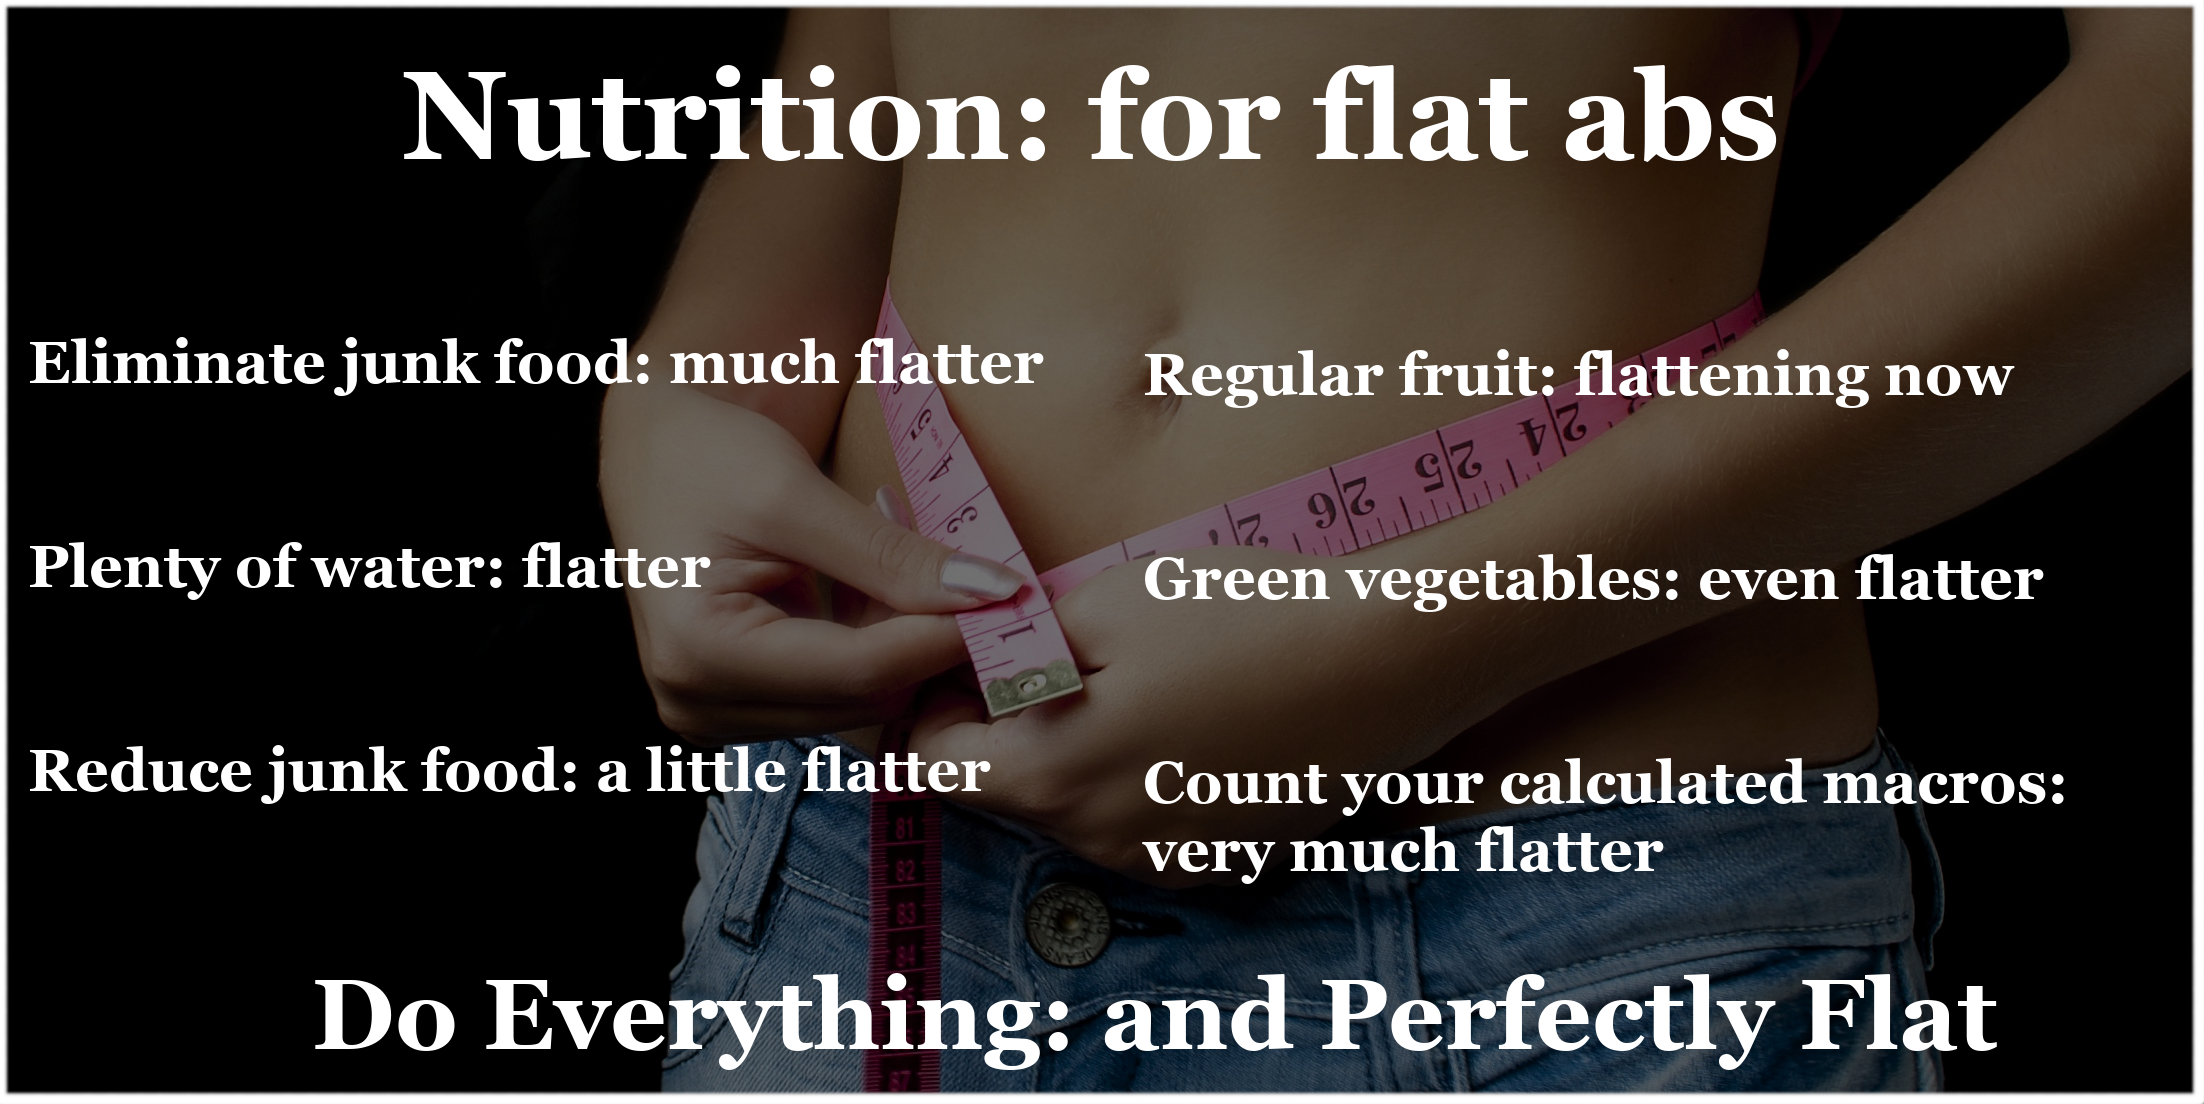 Nutrition - For Flat Abs